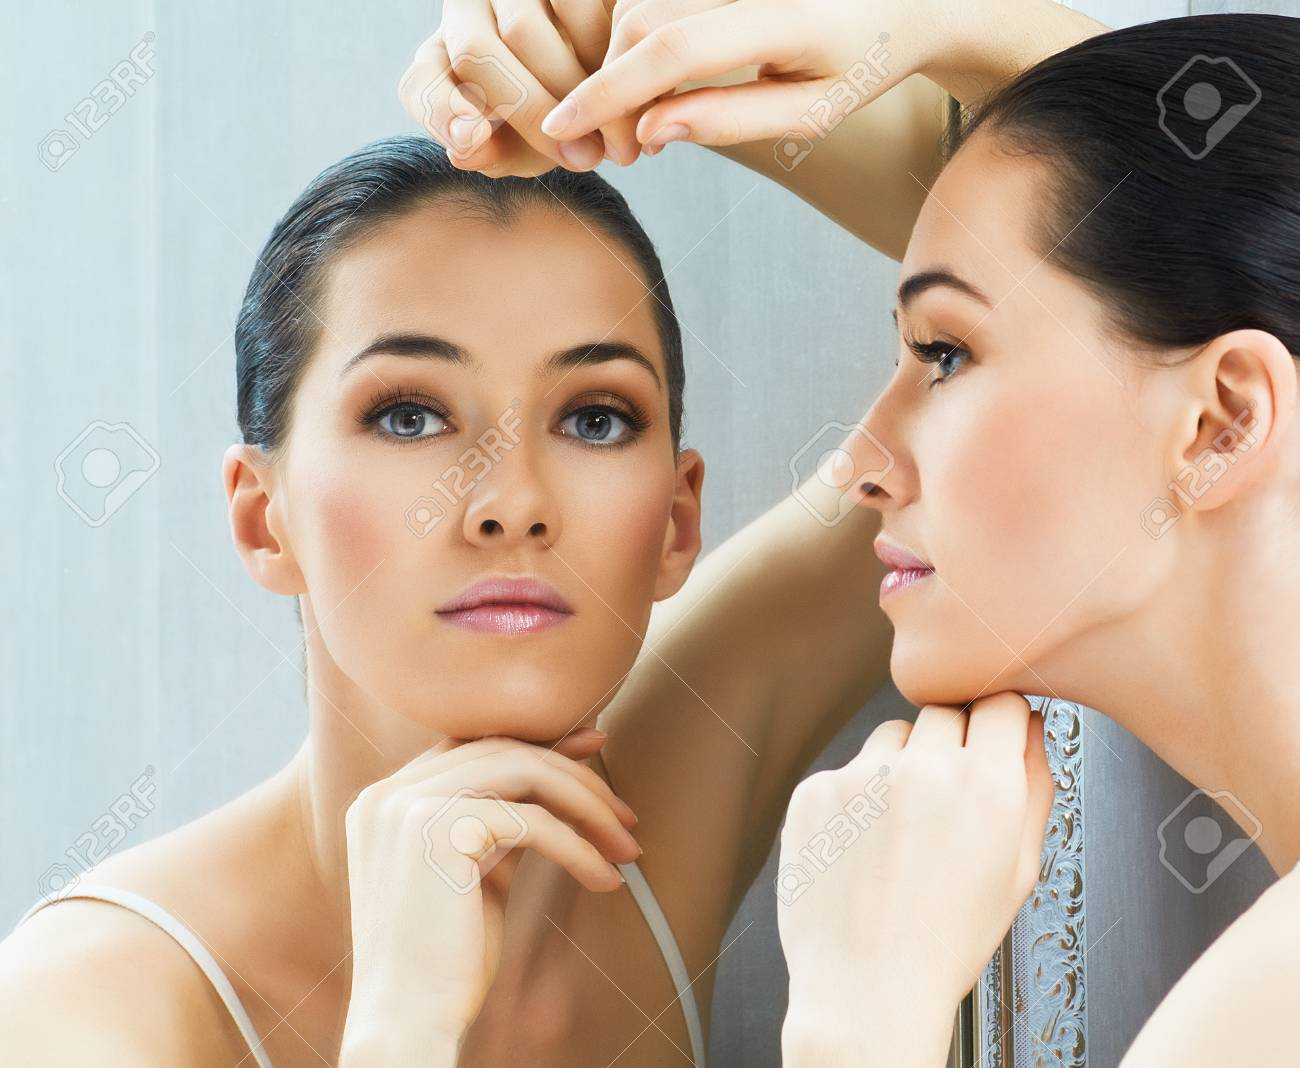 a beauty girl on the mirror background Stock Photo - 23135980